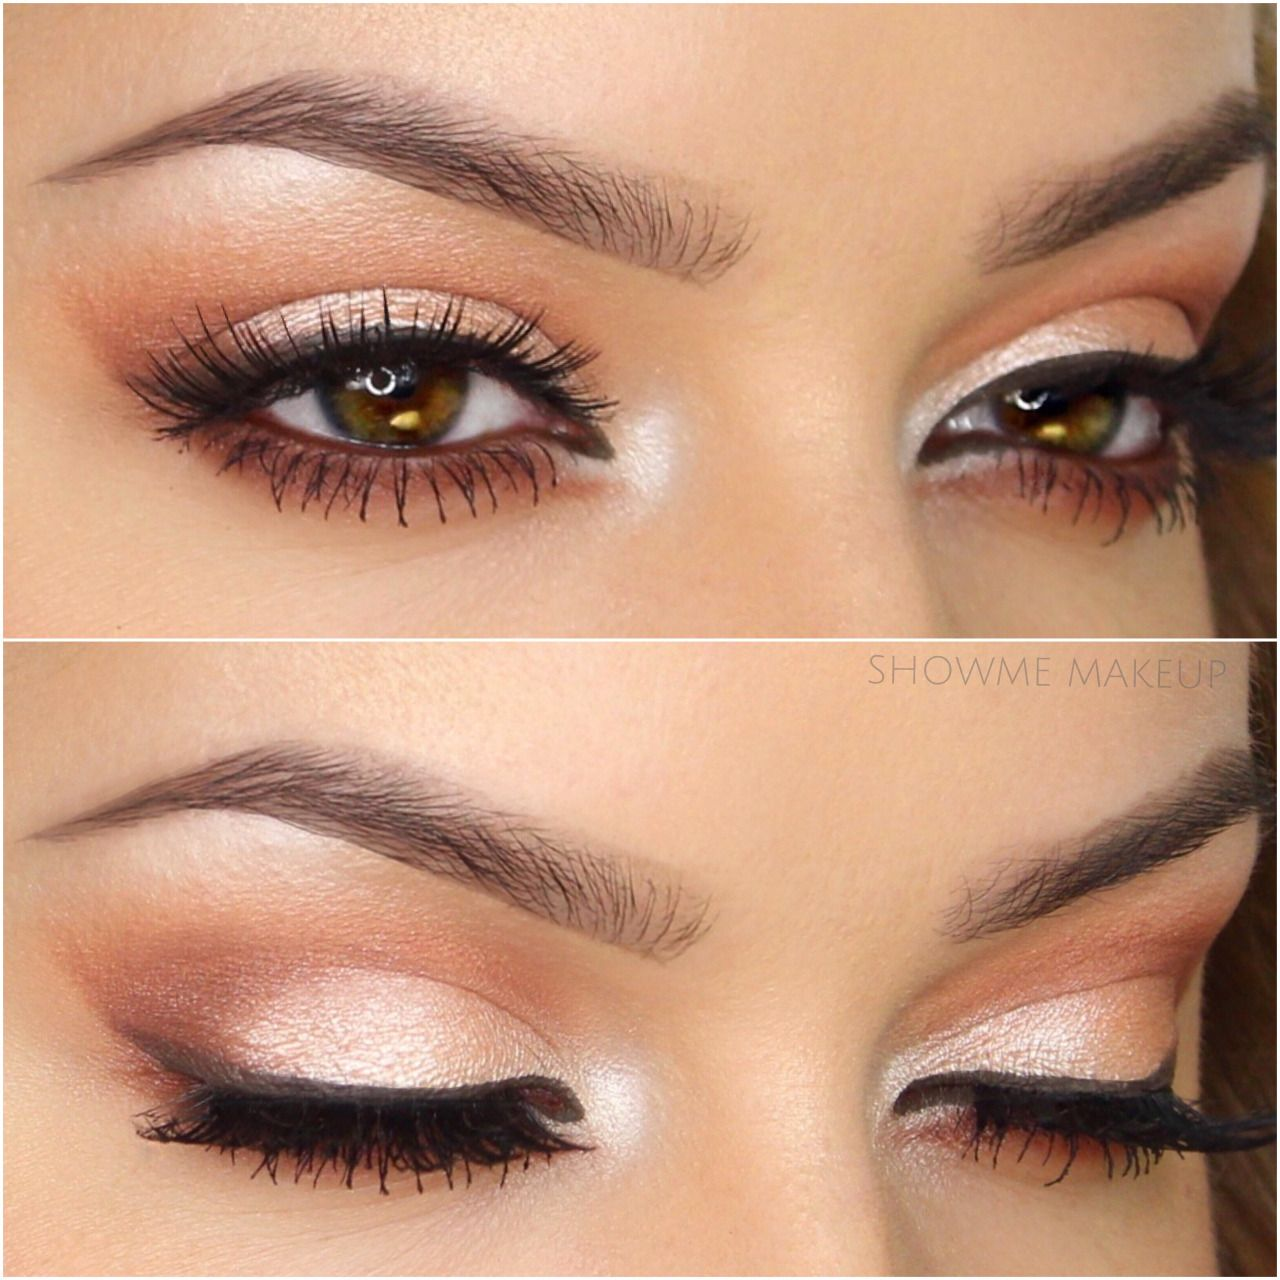 showmemakeup: peachy glowing eyes valentine's day is on the